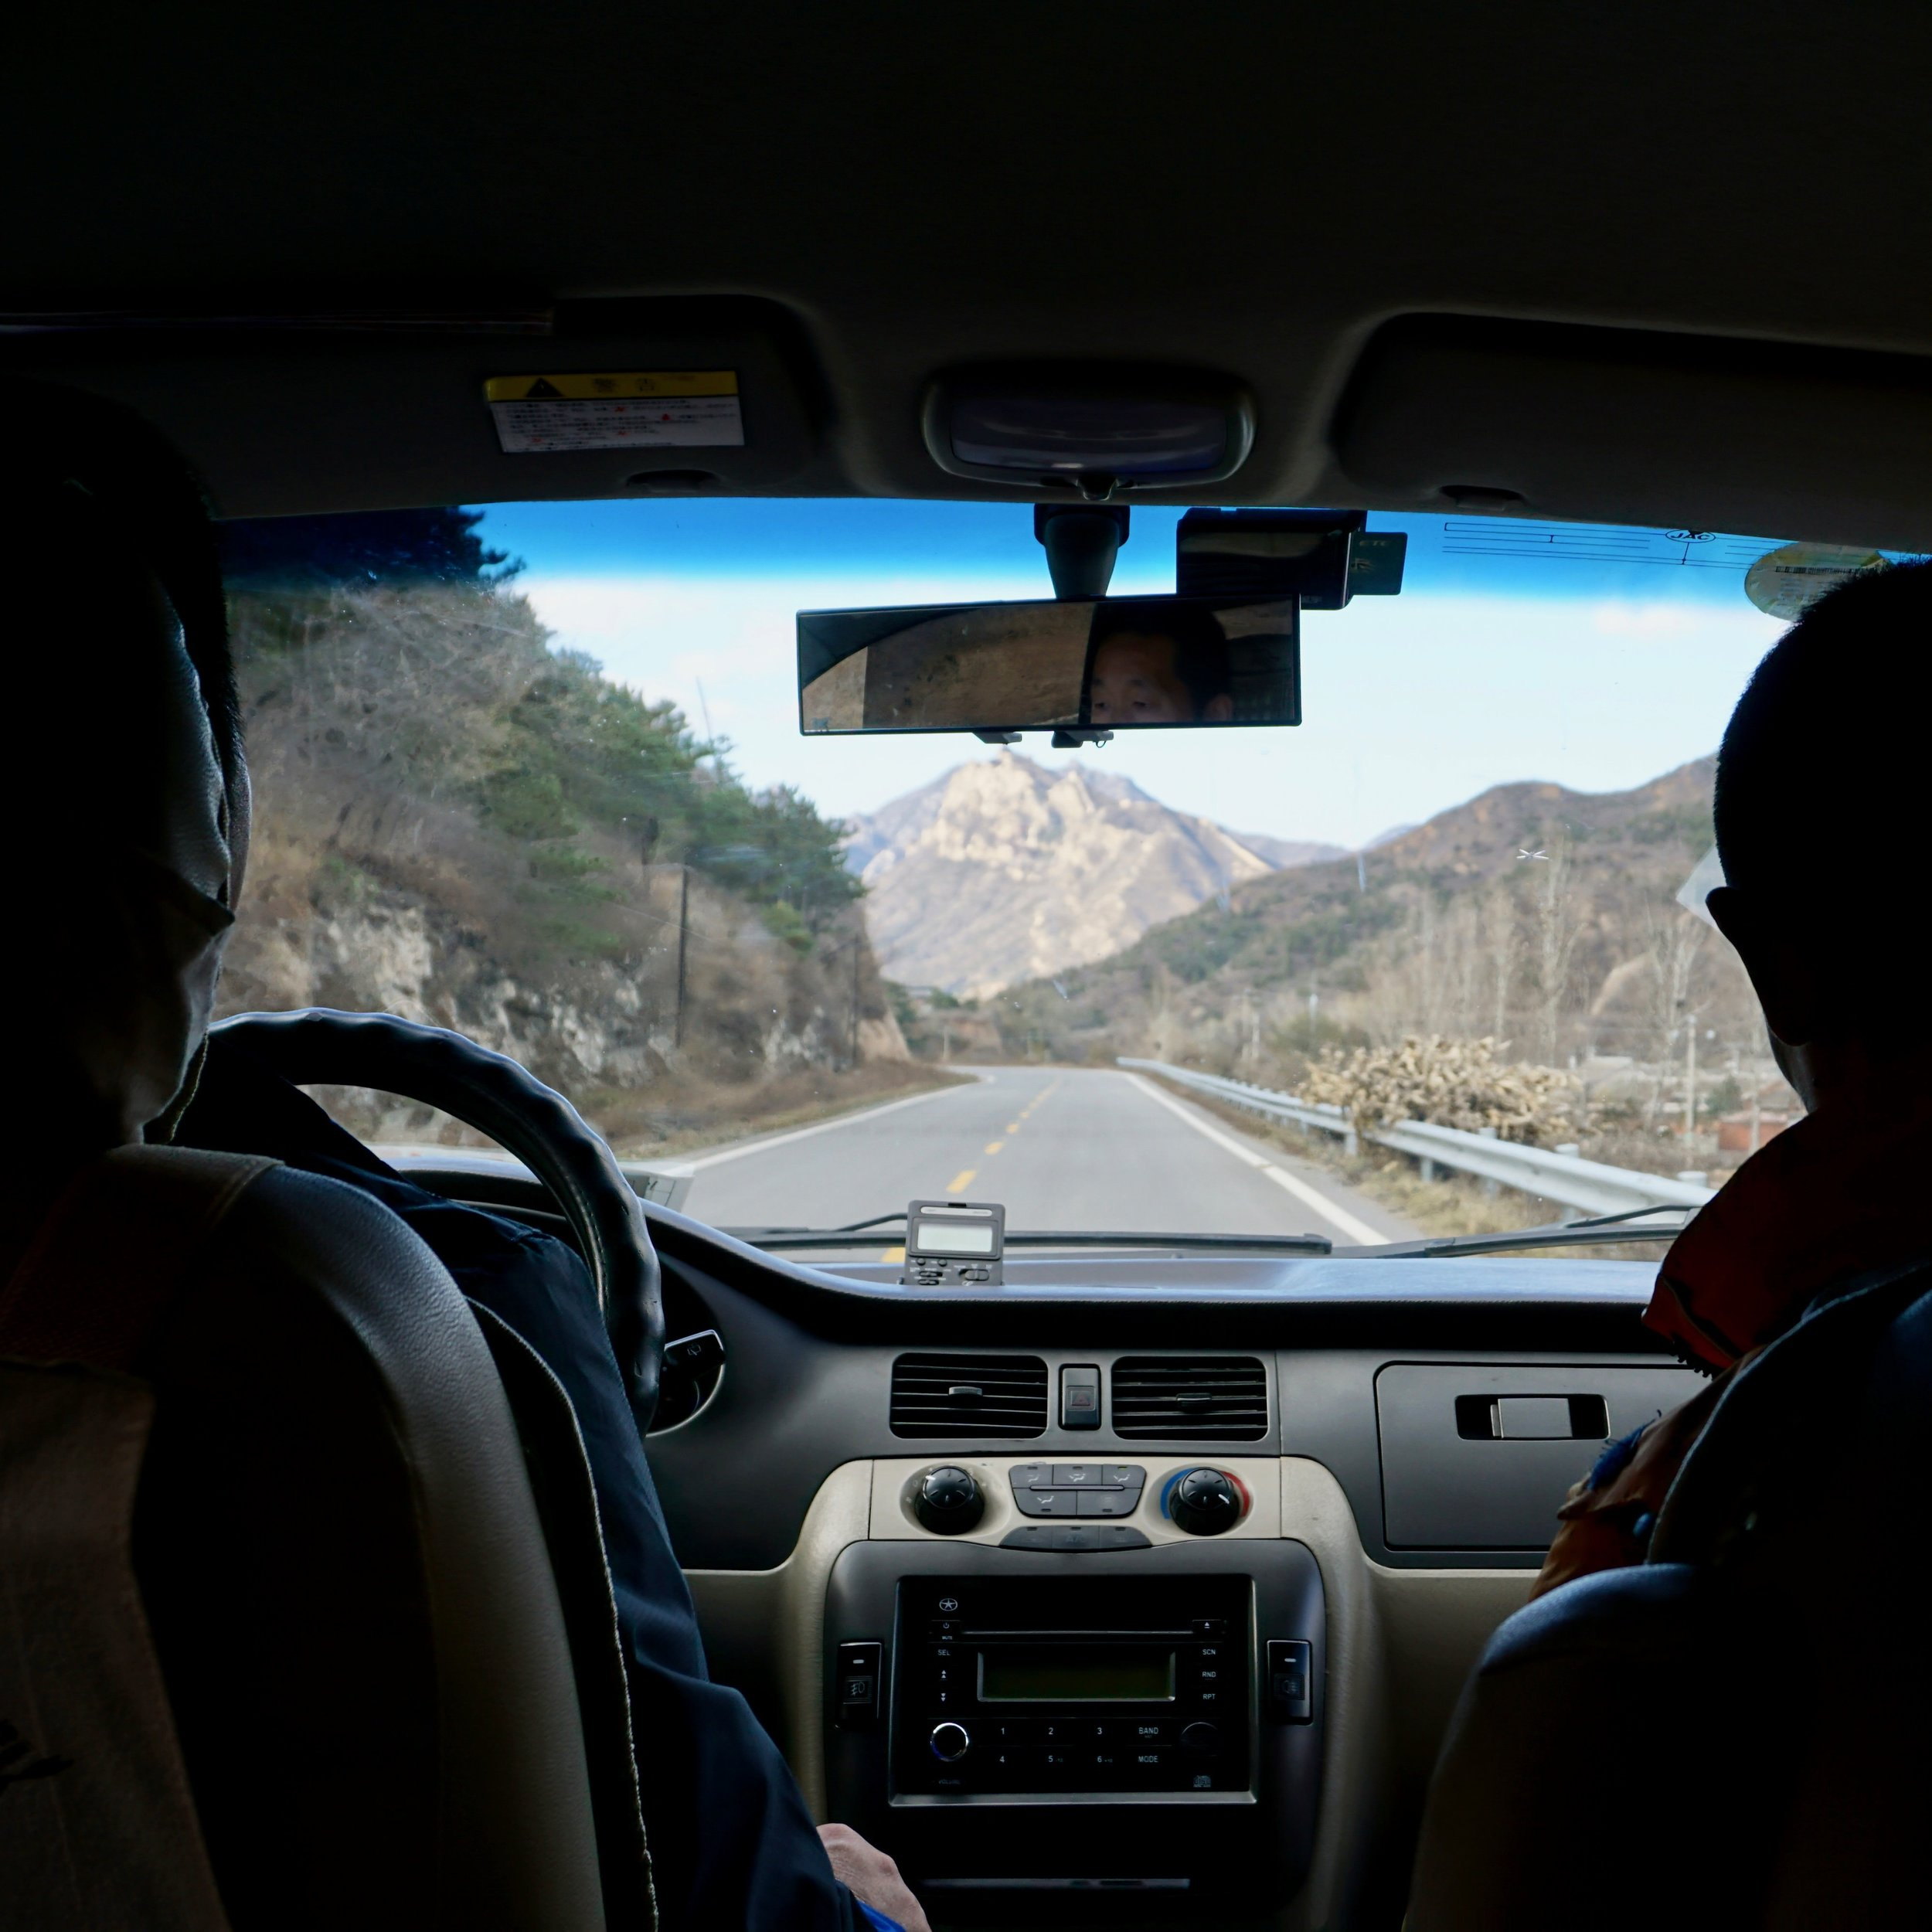 Driving to the Great Wall